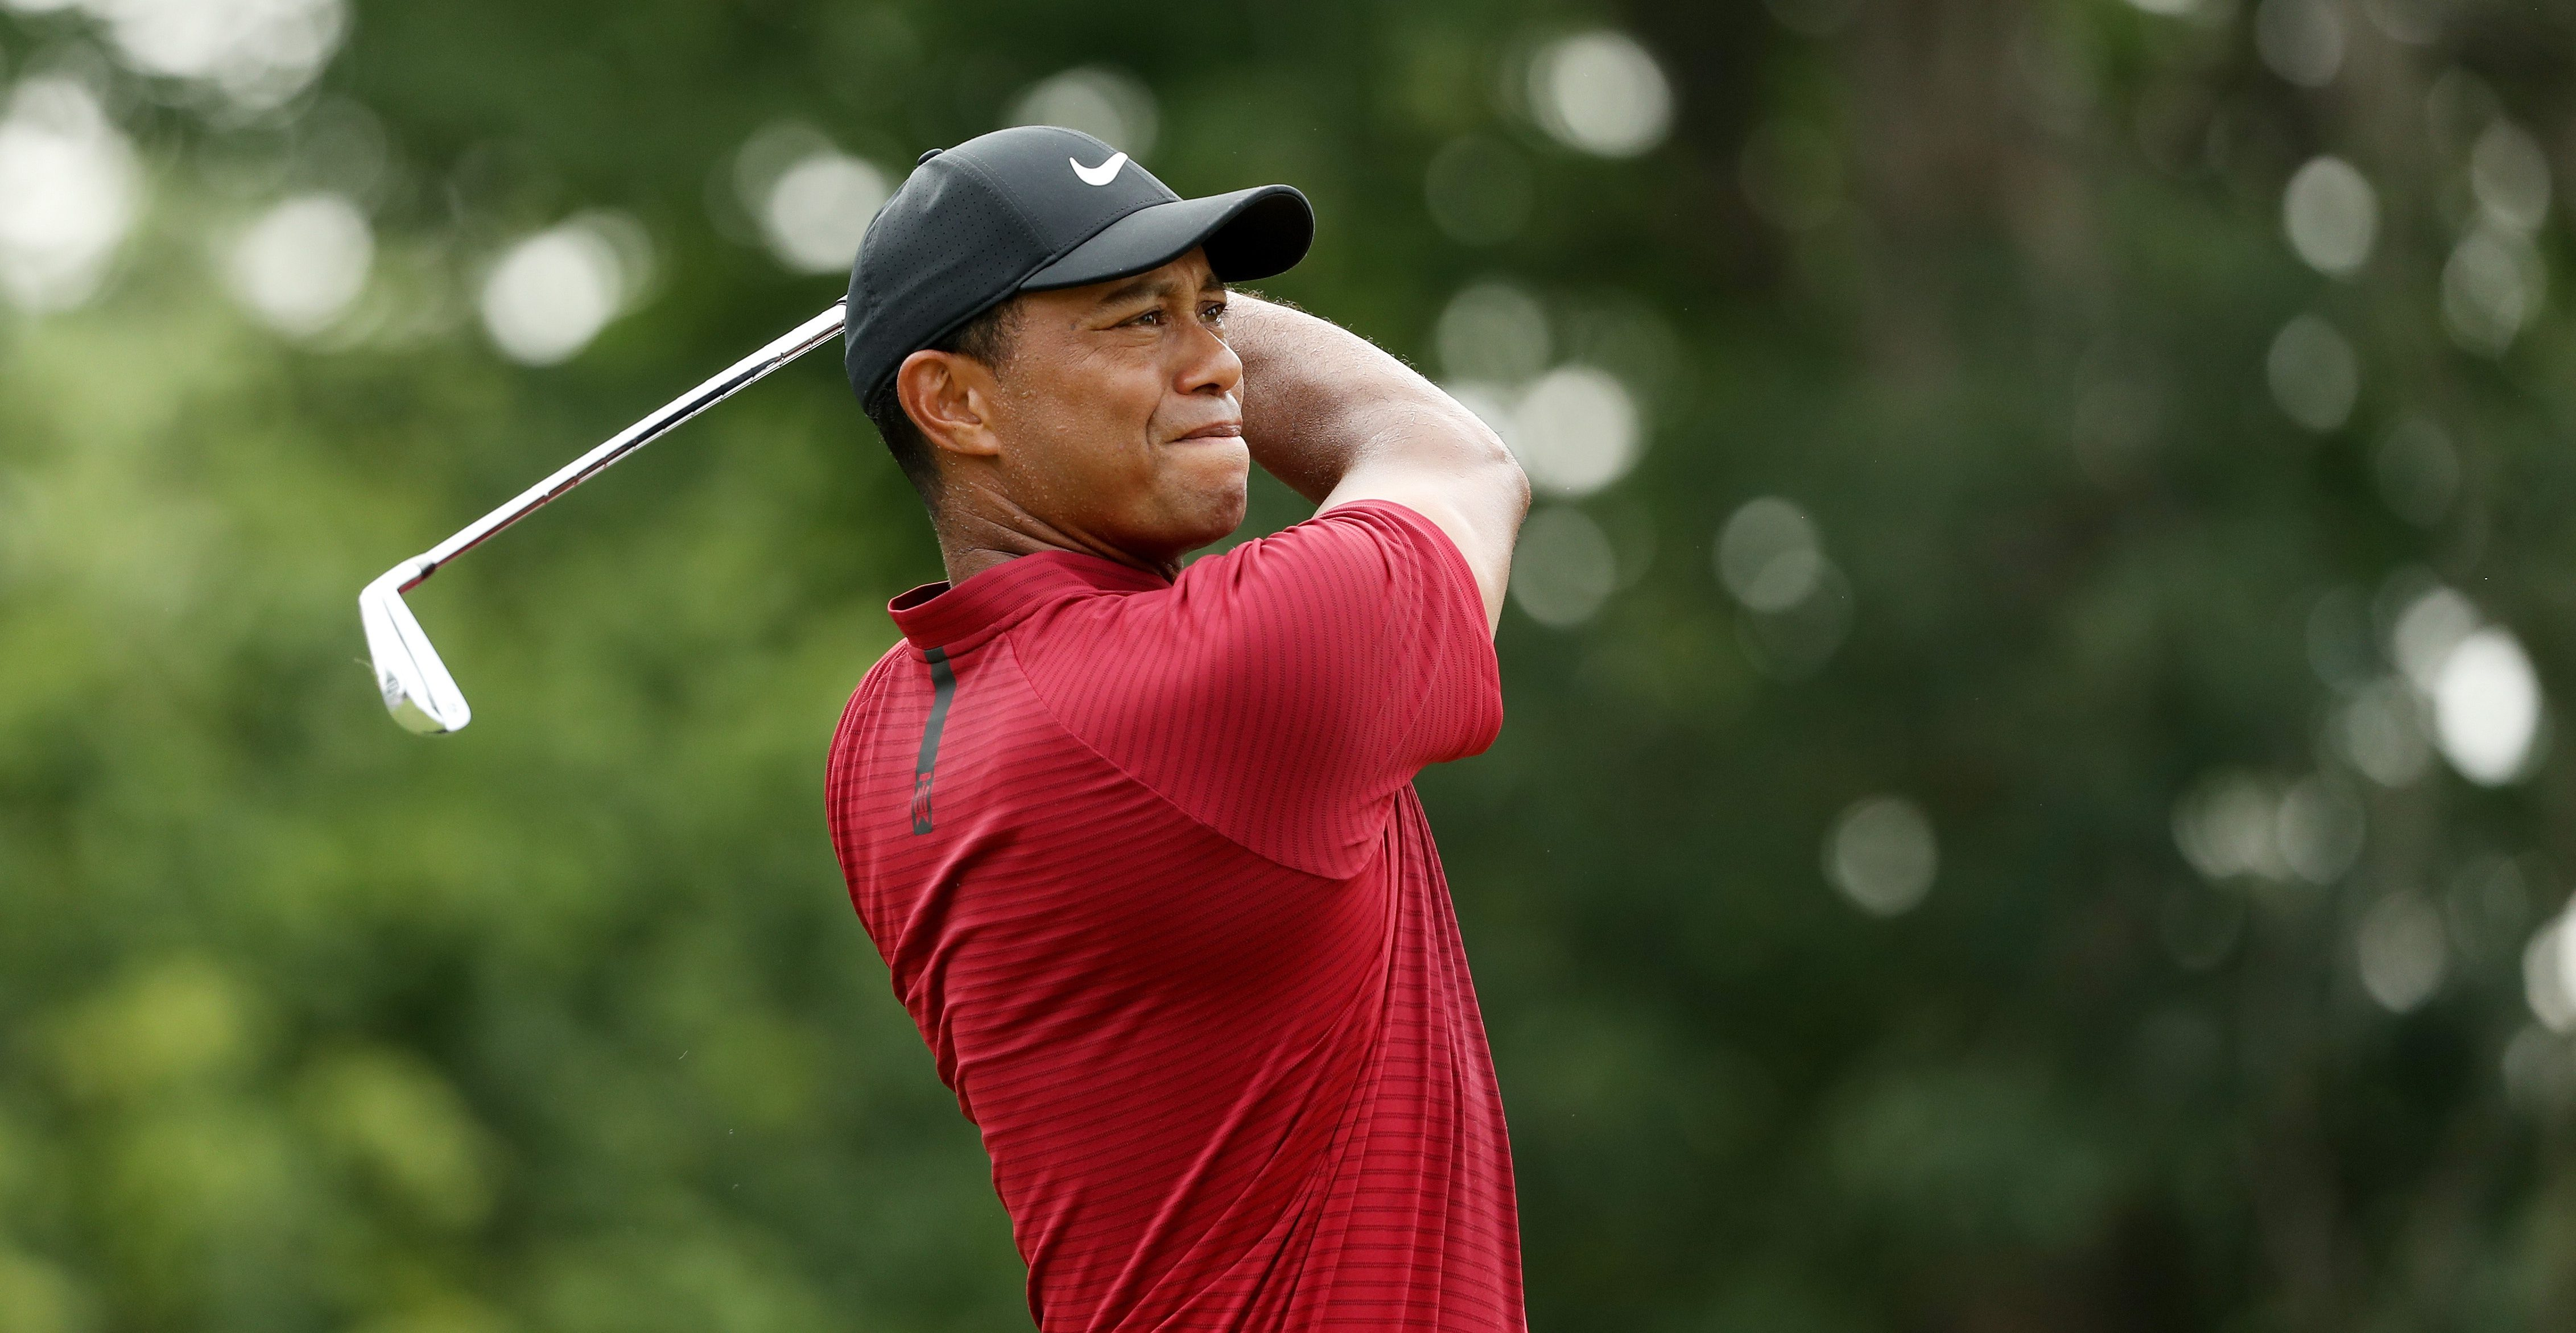 ST LOUIS, MO - AUGUST 12: Tiger Woods of the United States plays his shot from the second tee during the final round of the 2018 PGA Championship at Bellerive Country Club on August 12, 2018 in St Louis, Missouri. (Photo by Streeter Lecka/PGA of America/PGA of America via Getty Images)